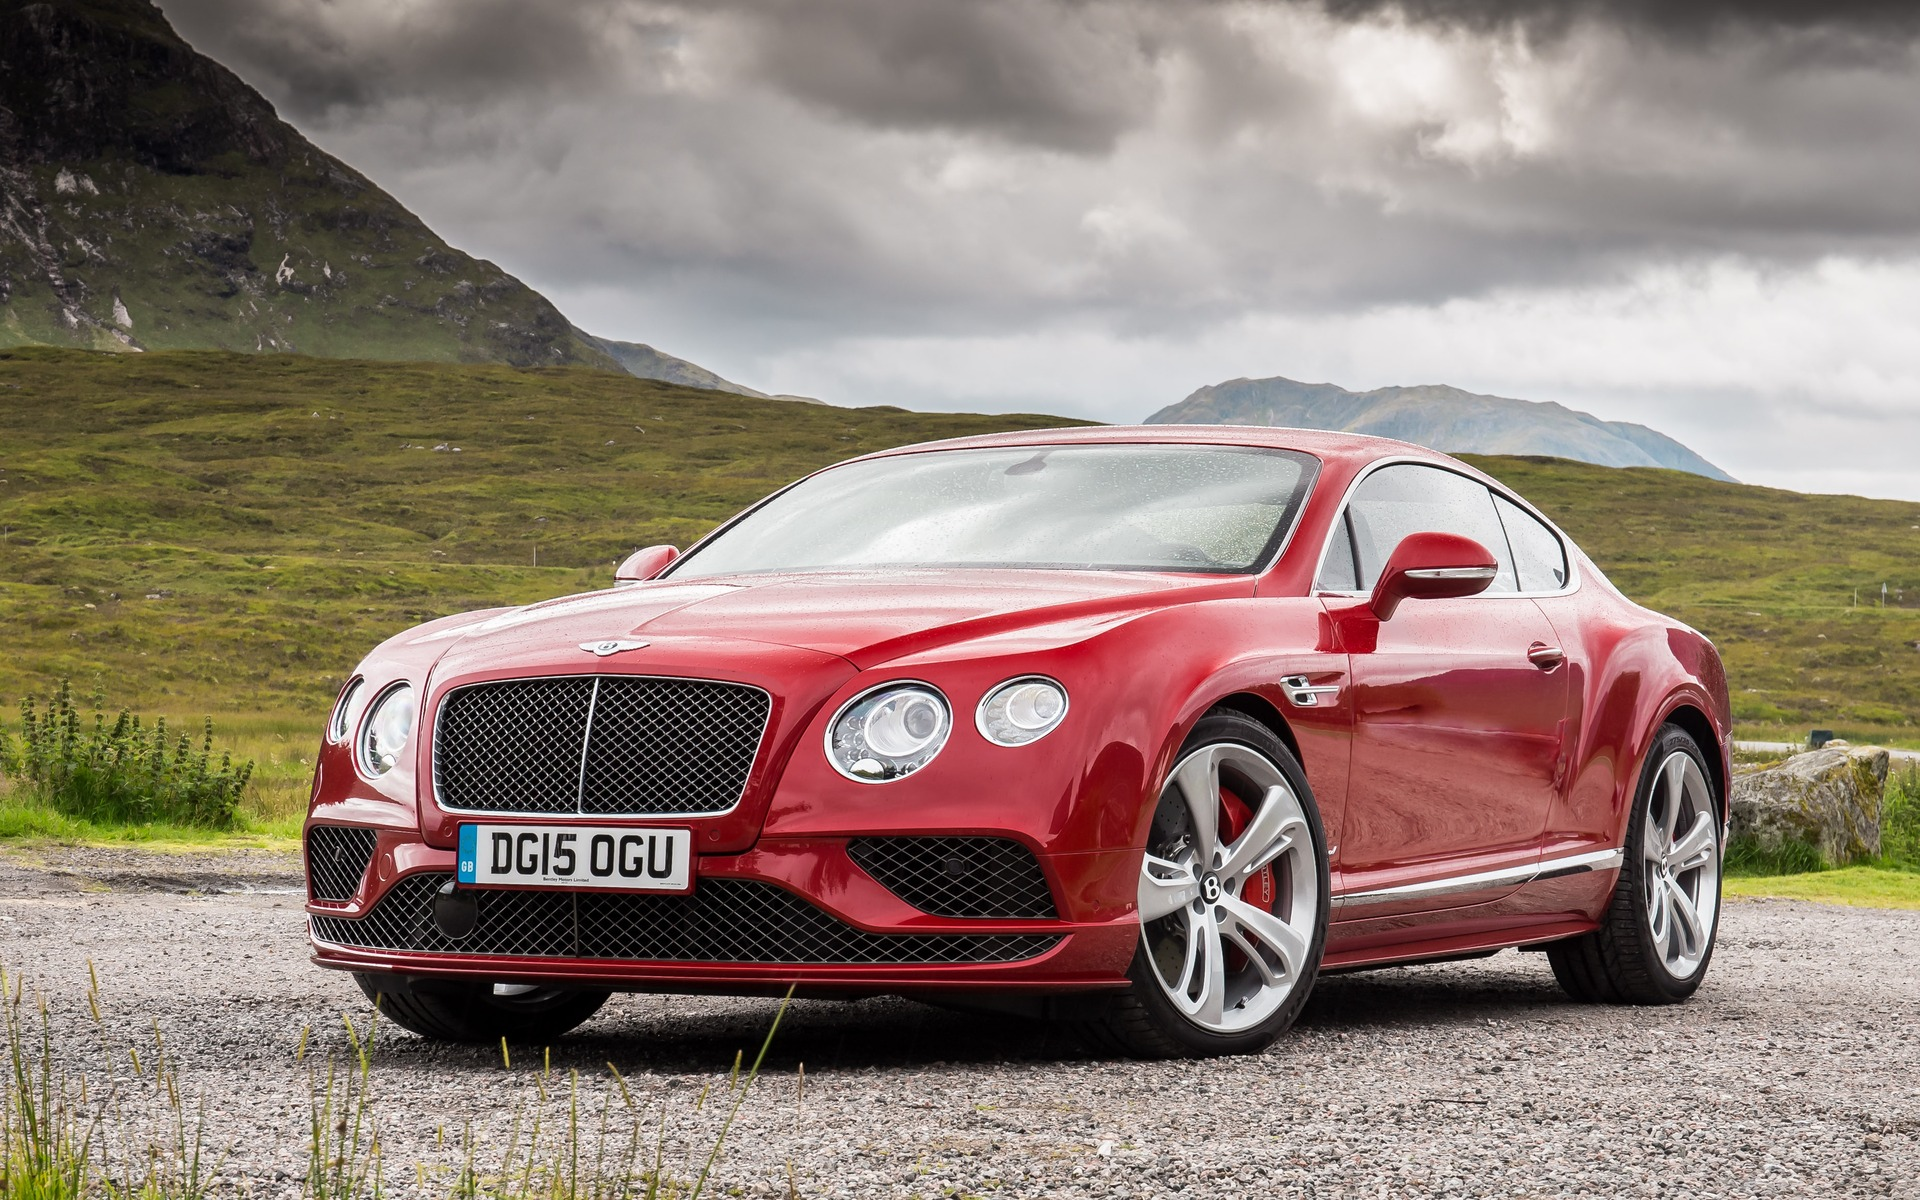 2017 bentley continental gt v8 specifications the car guide. Black Bedroom Furniture Sets. Home Design Ideas